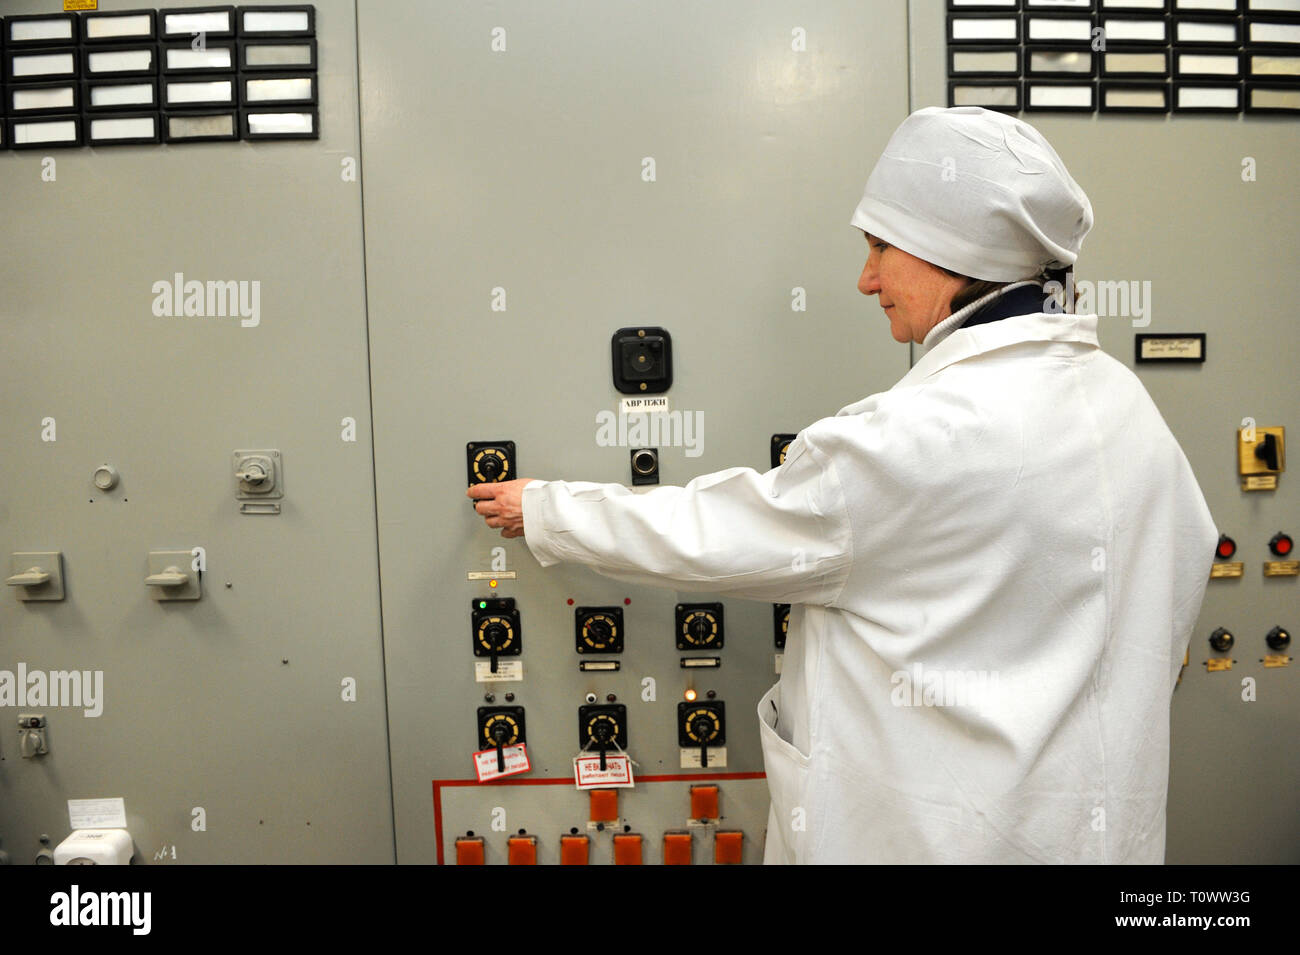 At the control operations room of the Chernobyl Nuclear Power Plant . Operator turning the toggle switch on the main control board. - Stock Image